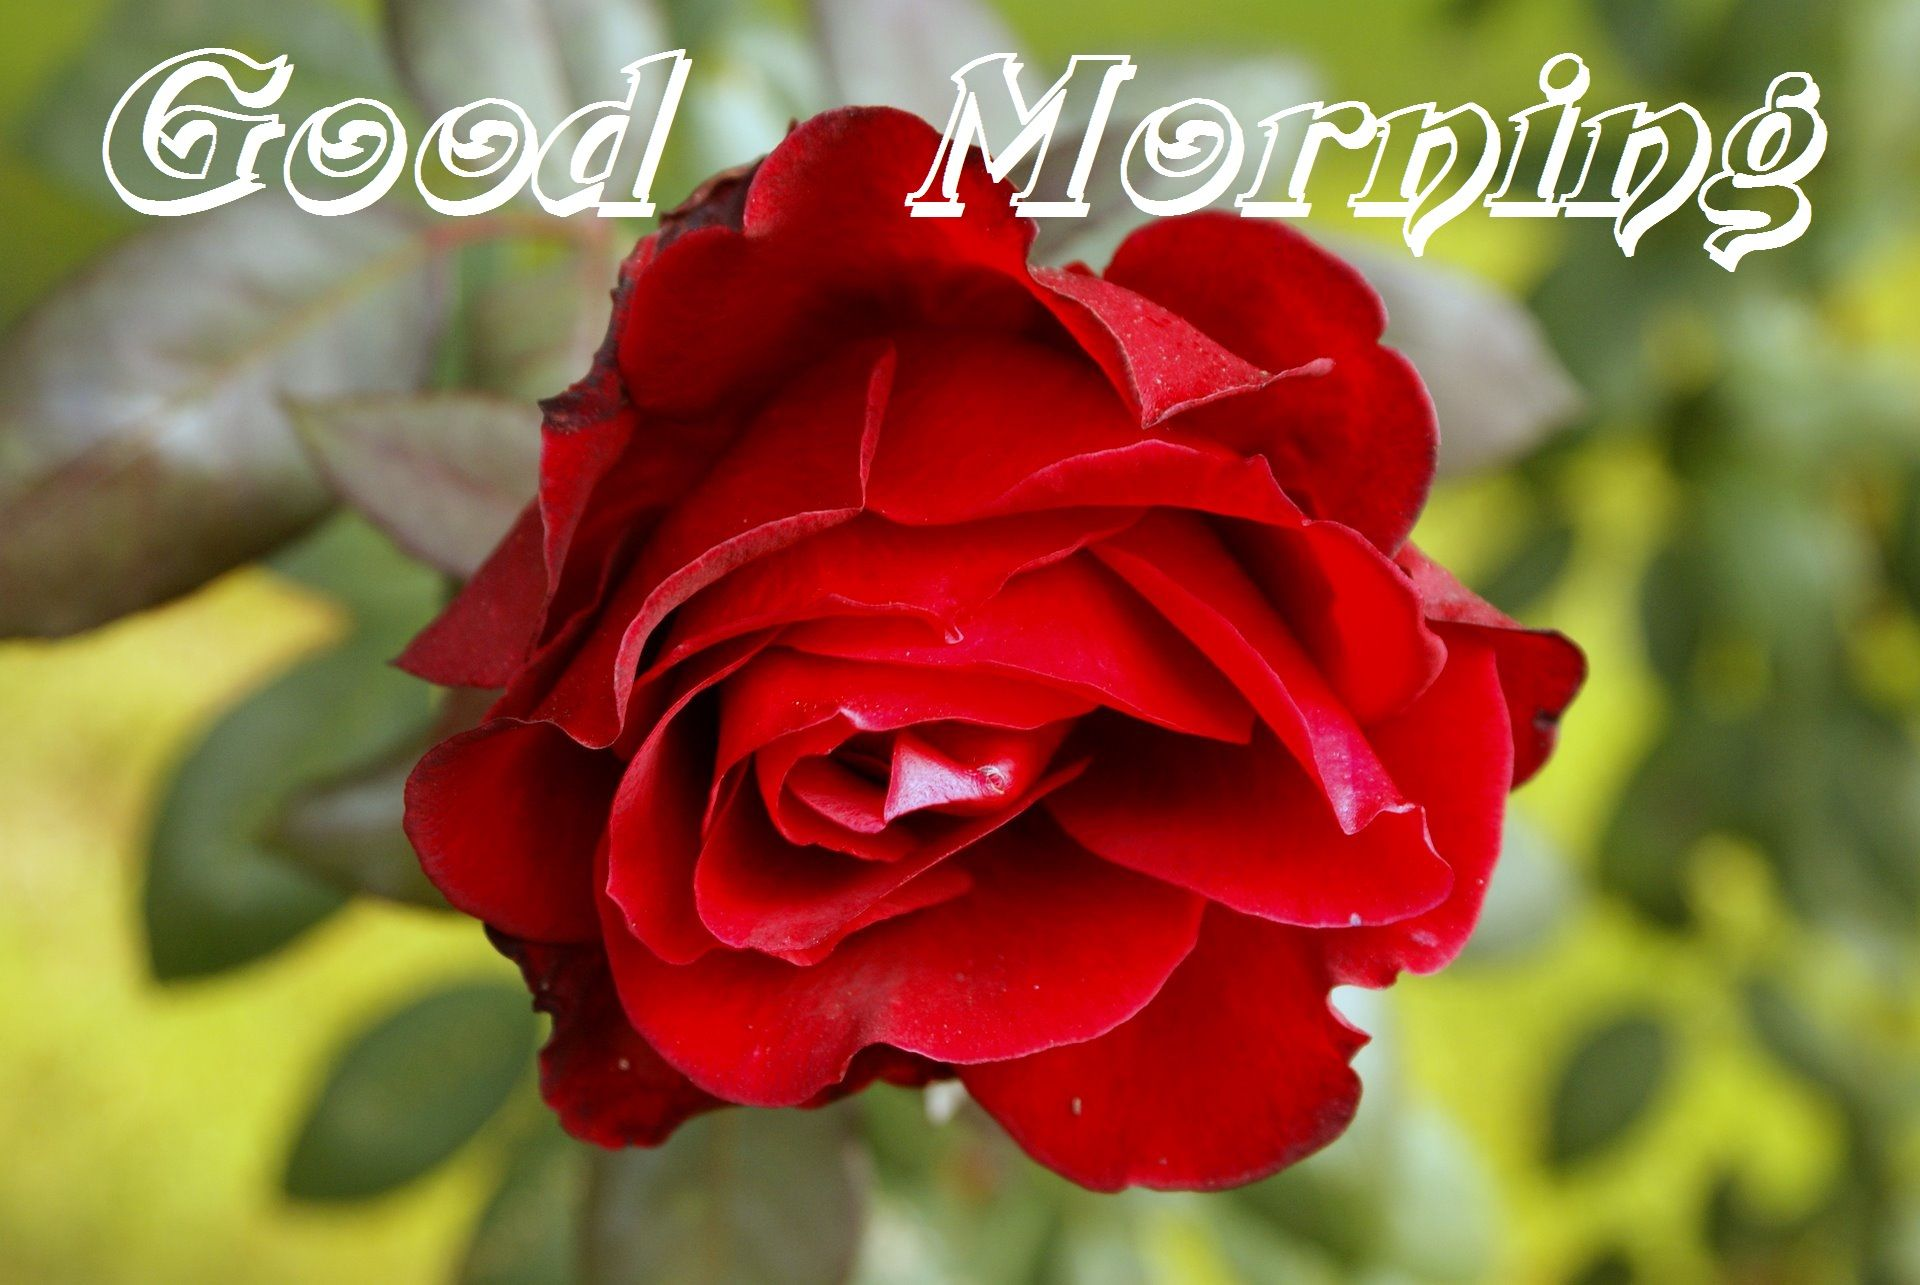 Good Morning Red Rose Cards For My Love Friends Good Morning Roses Morning Flowers Rose Flower Wallpaper